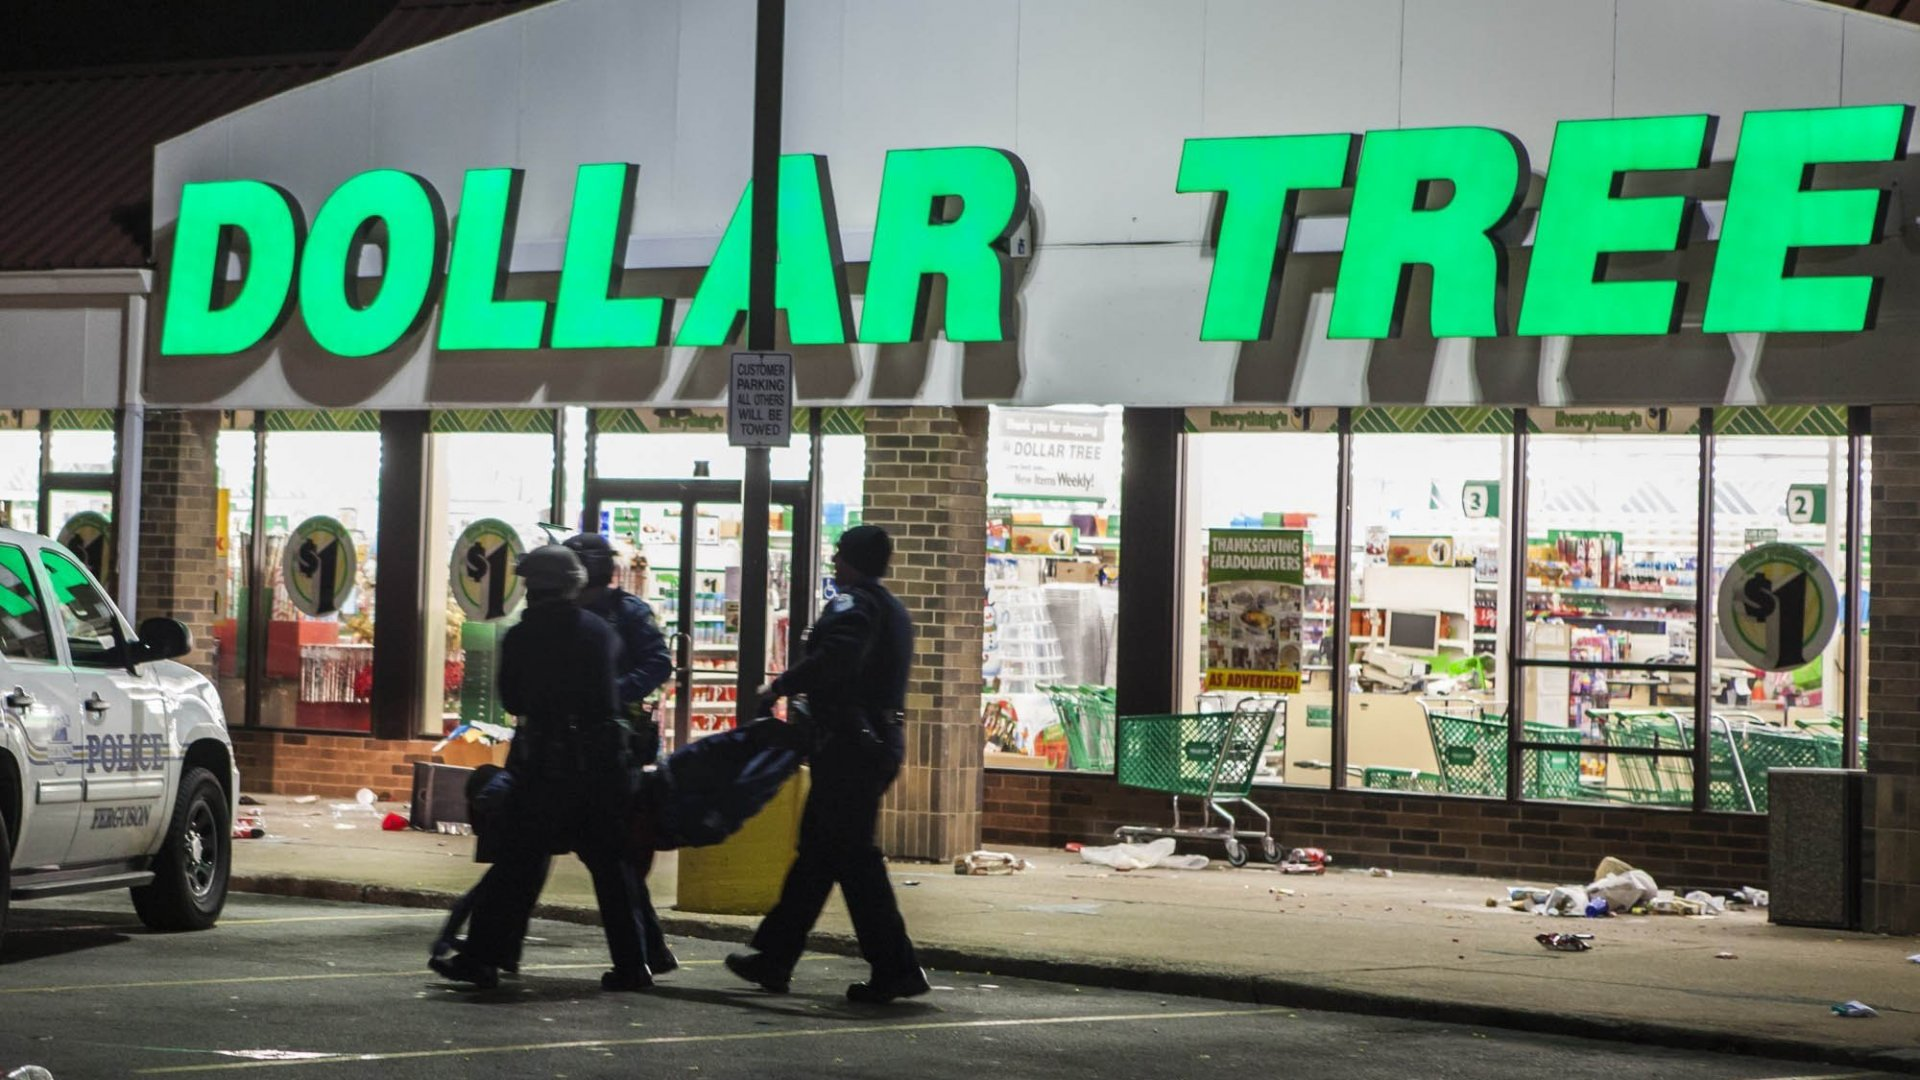 Dollar Tree Completes $8.5B Purchase of Family Dollar